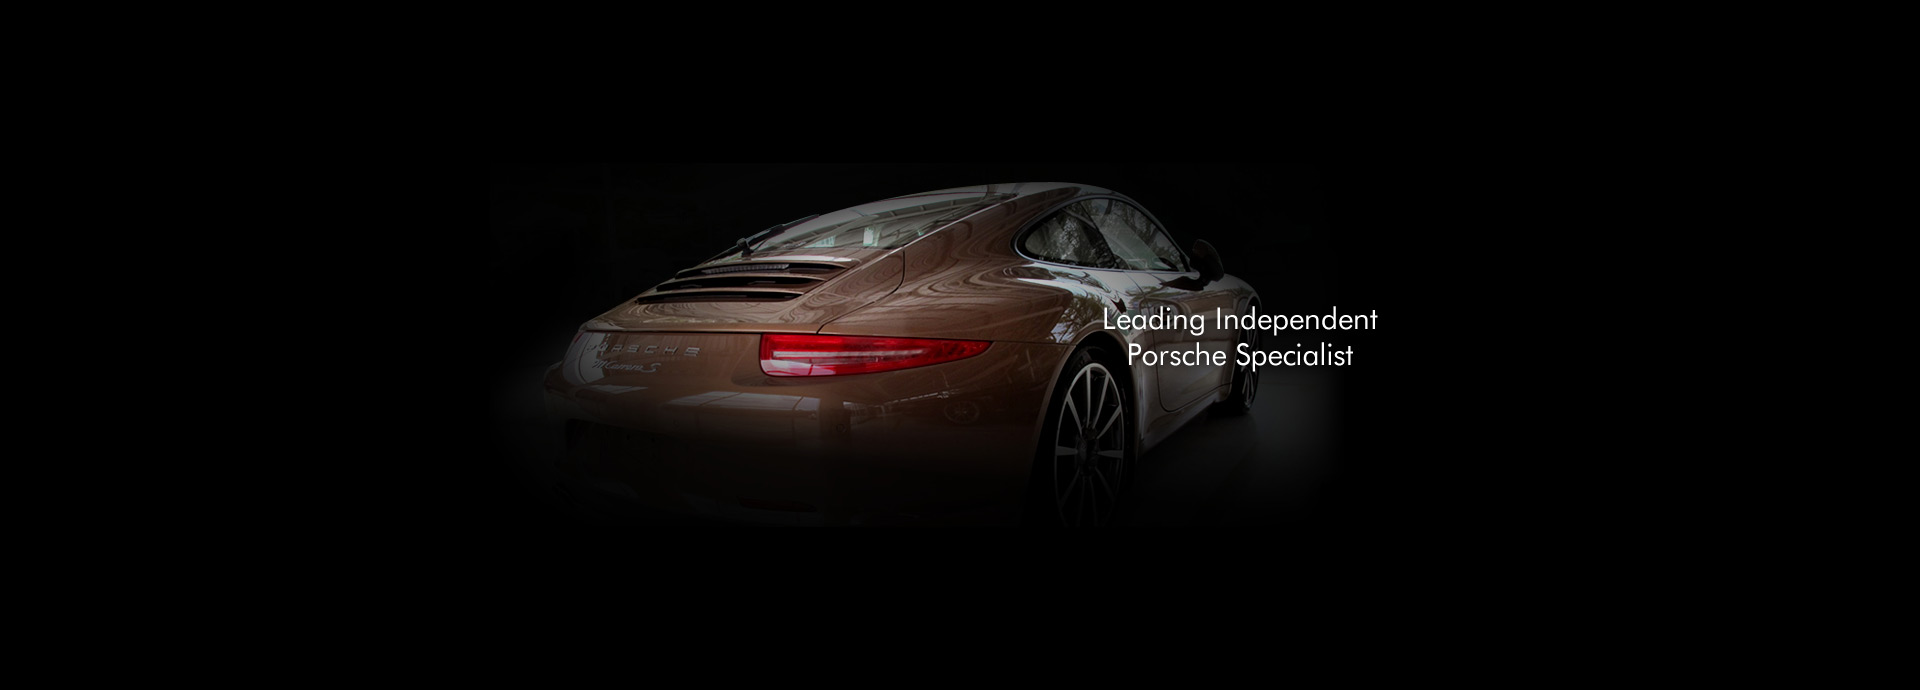 ClickseeDesign Develops a New Website for Auto Assistant Centre - Thailand's Used Porsche Cars Specialist